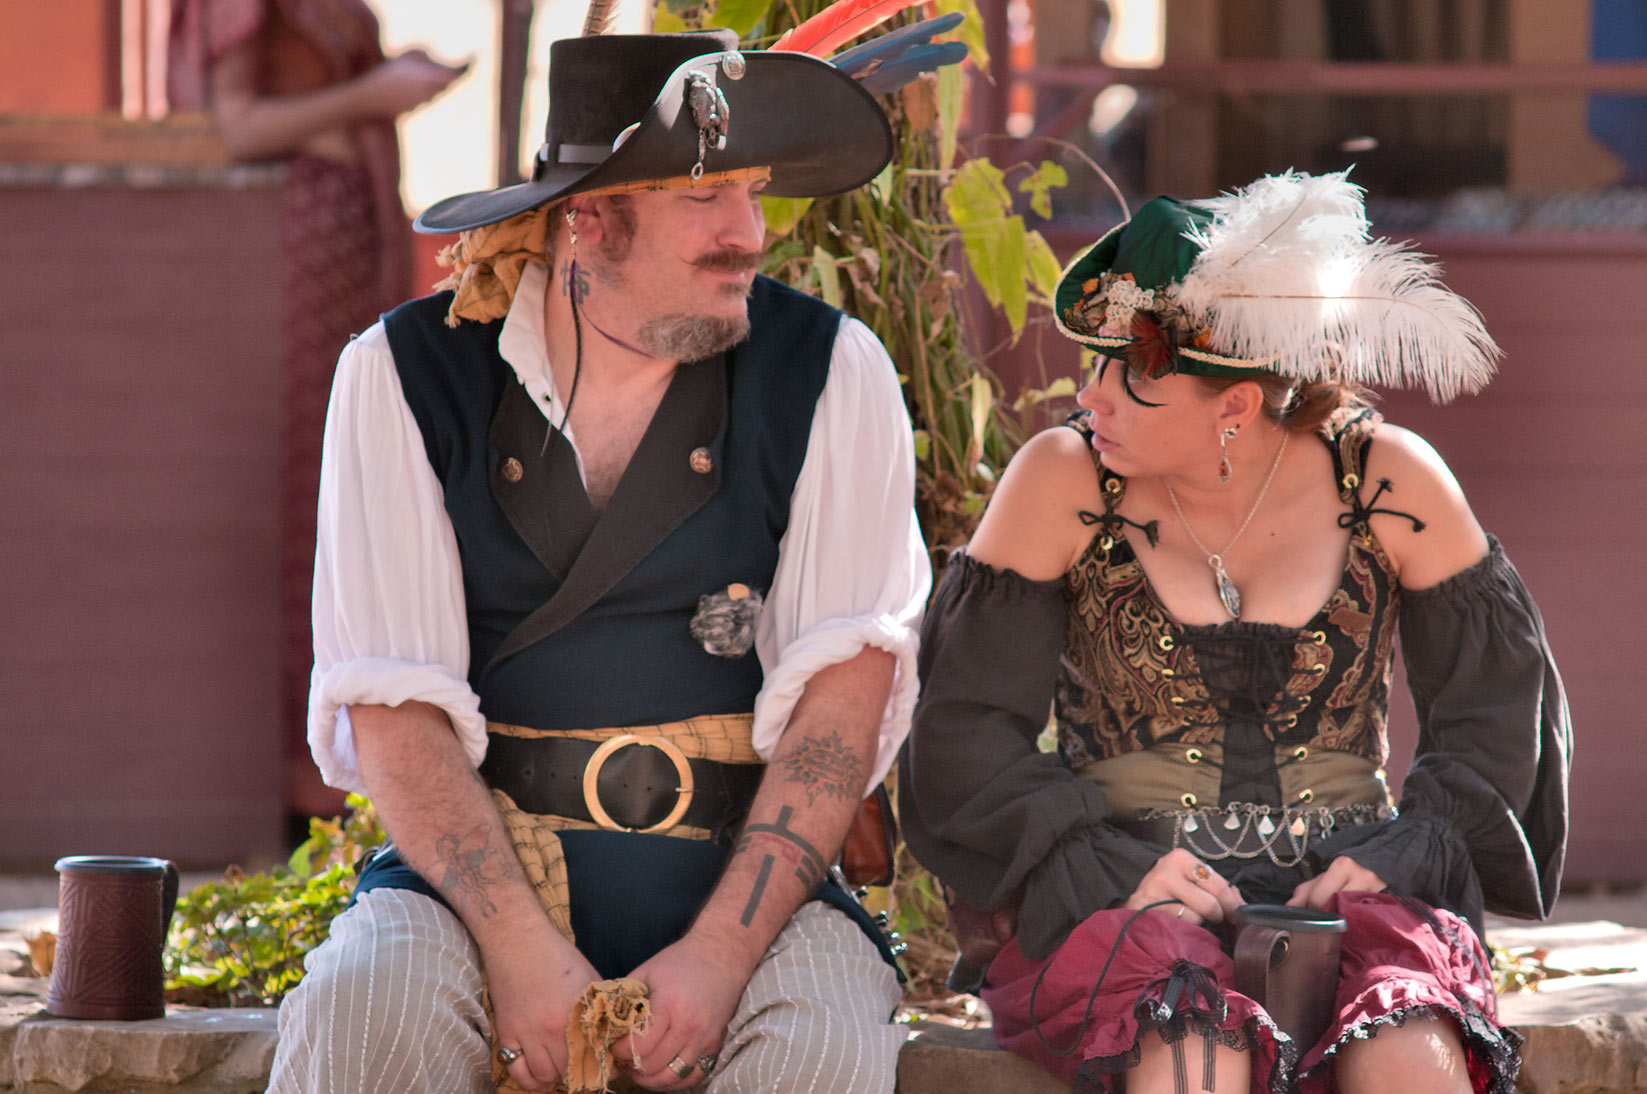 Two costumed visitors at Texas Renaissance Festival. Plantersville, Texas